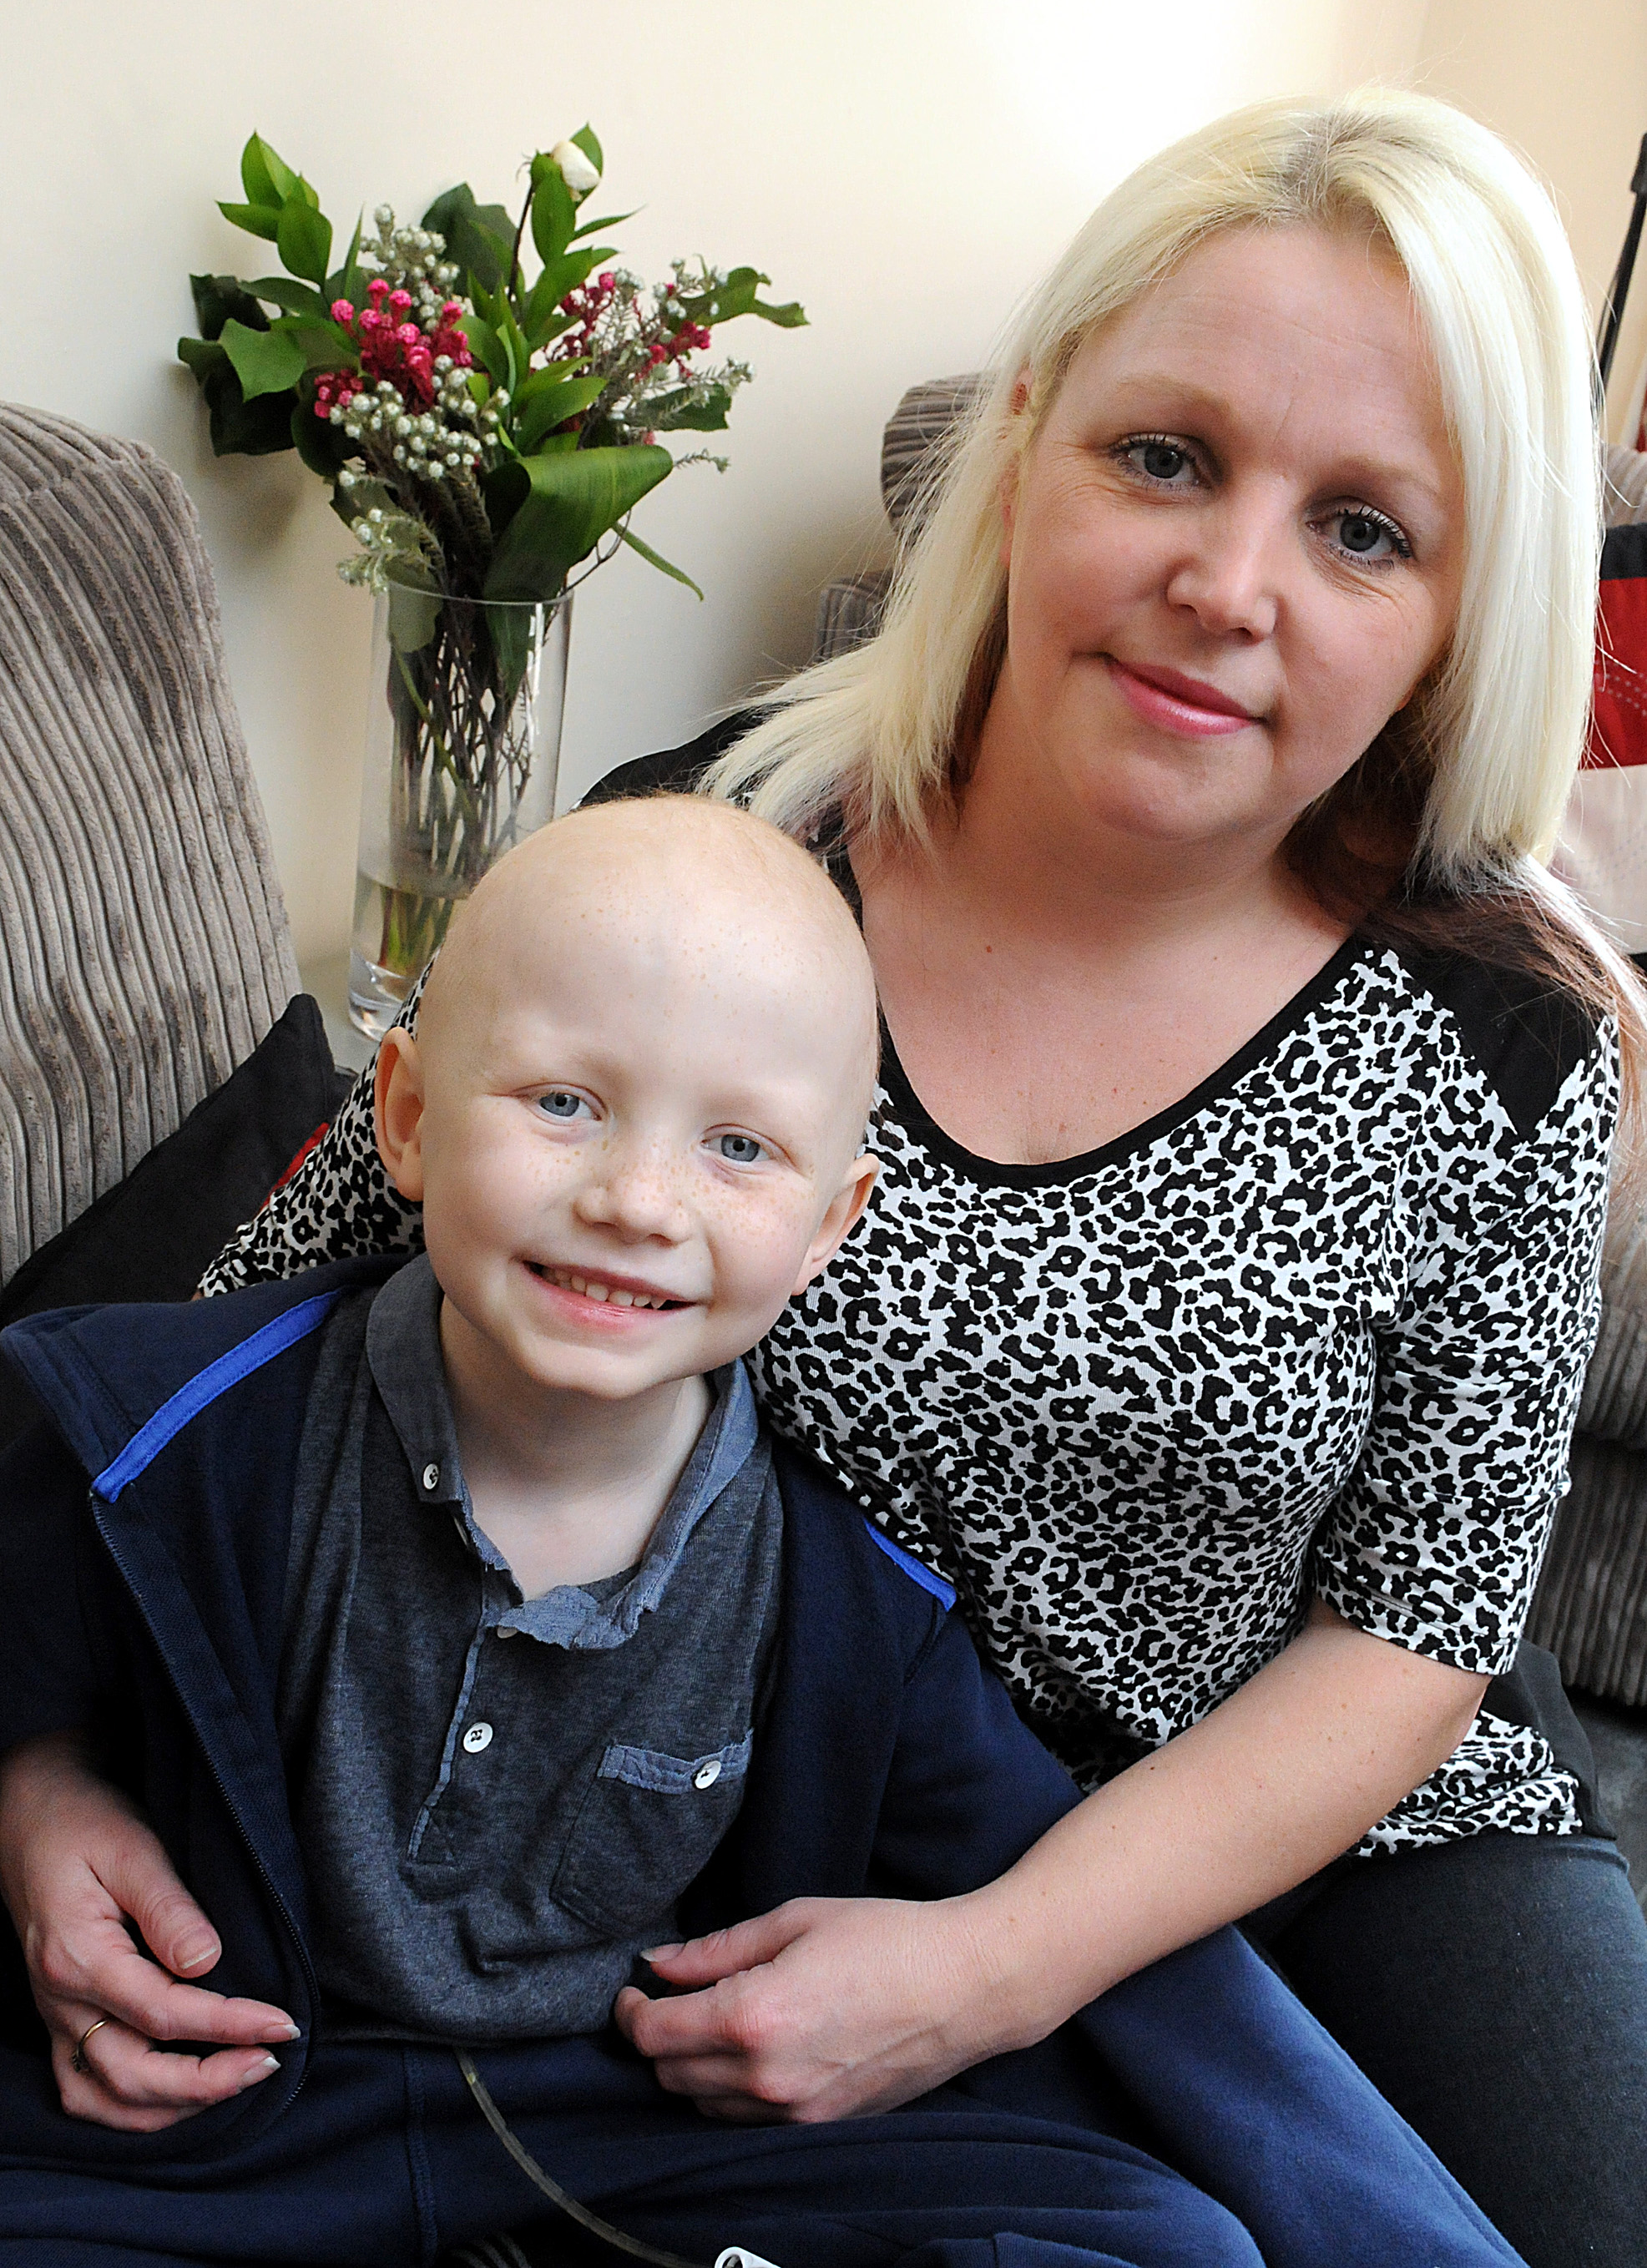 Cinammon Brow seven-year-old's cancer fight